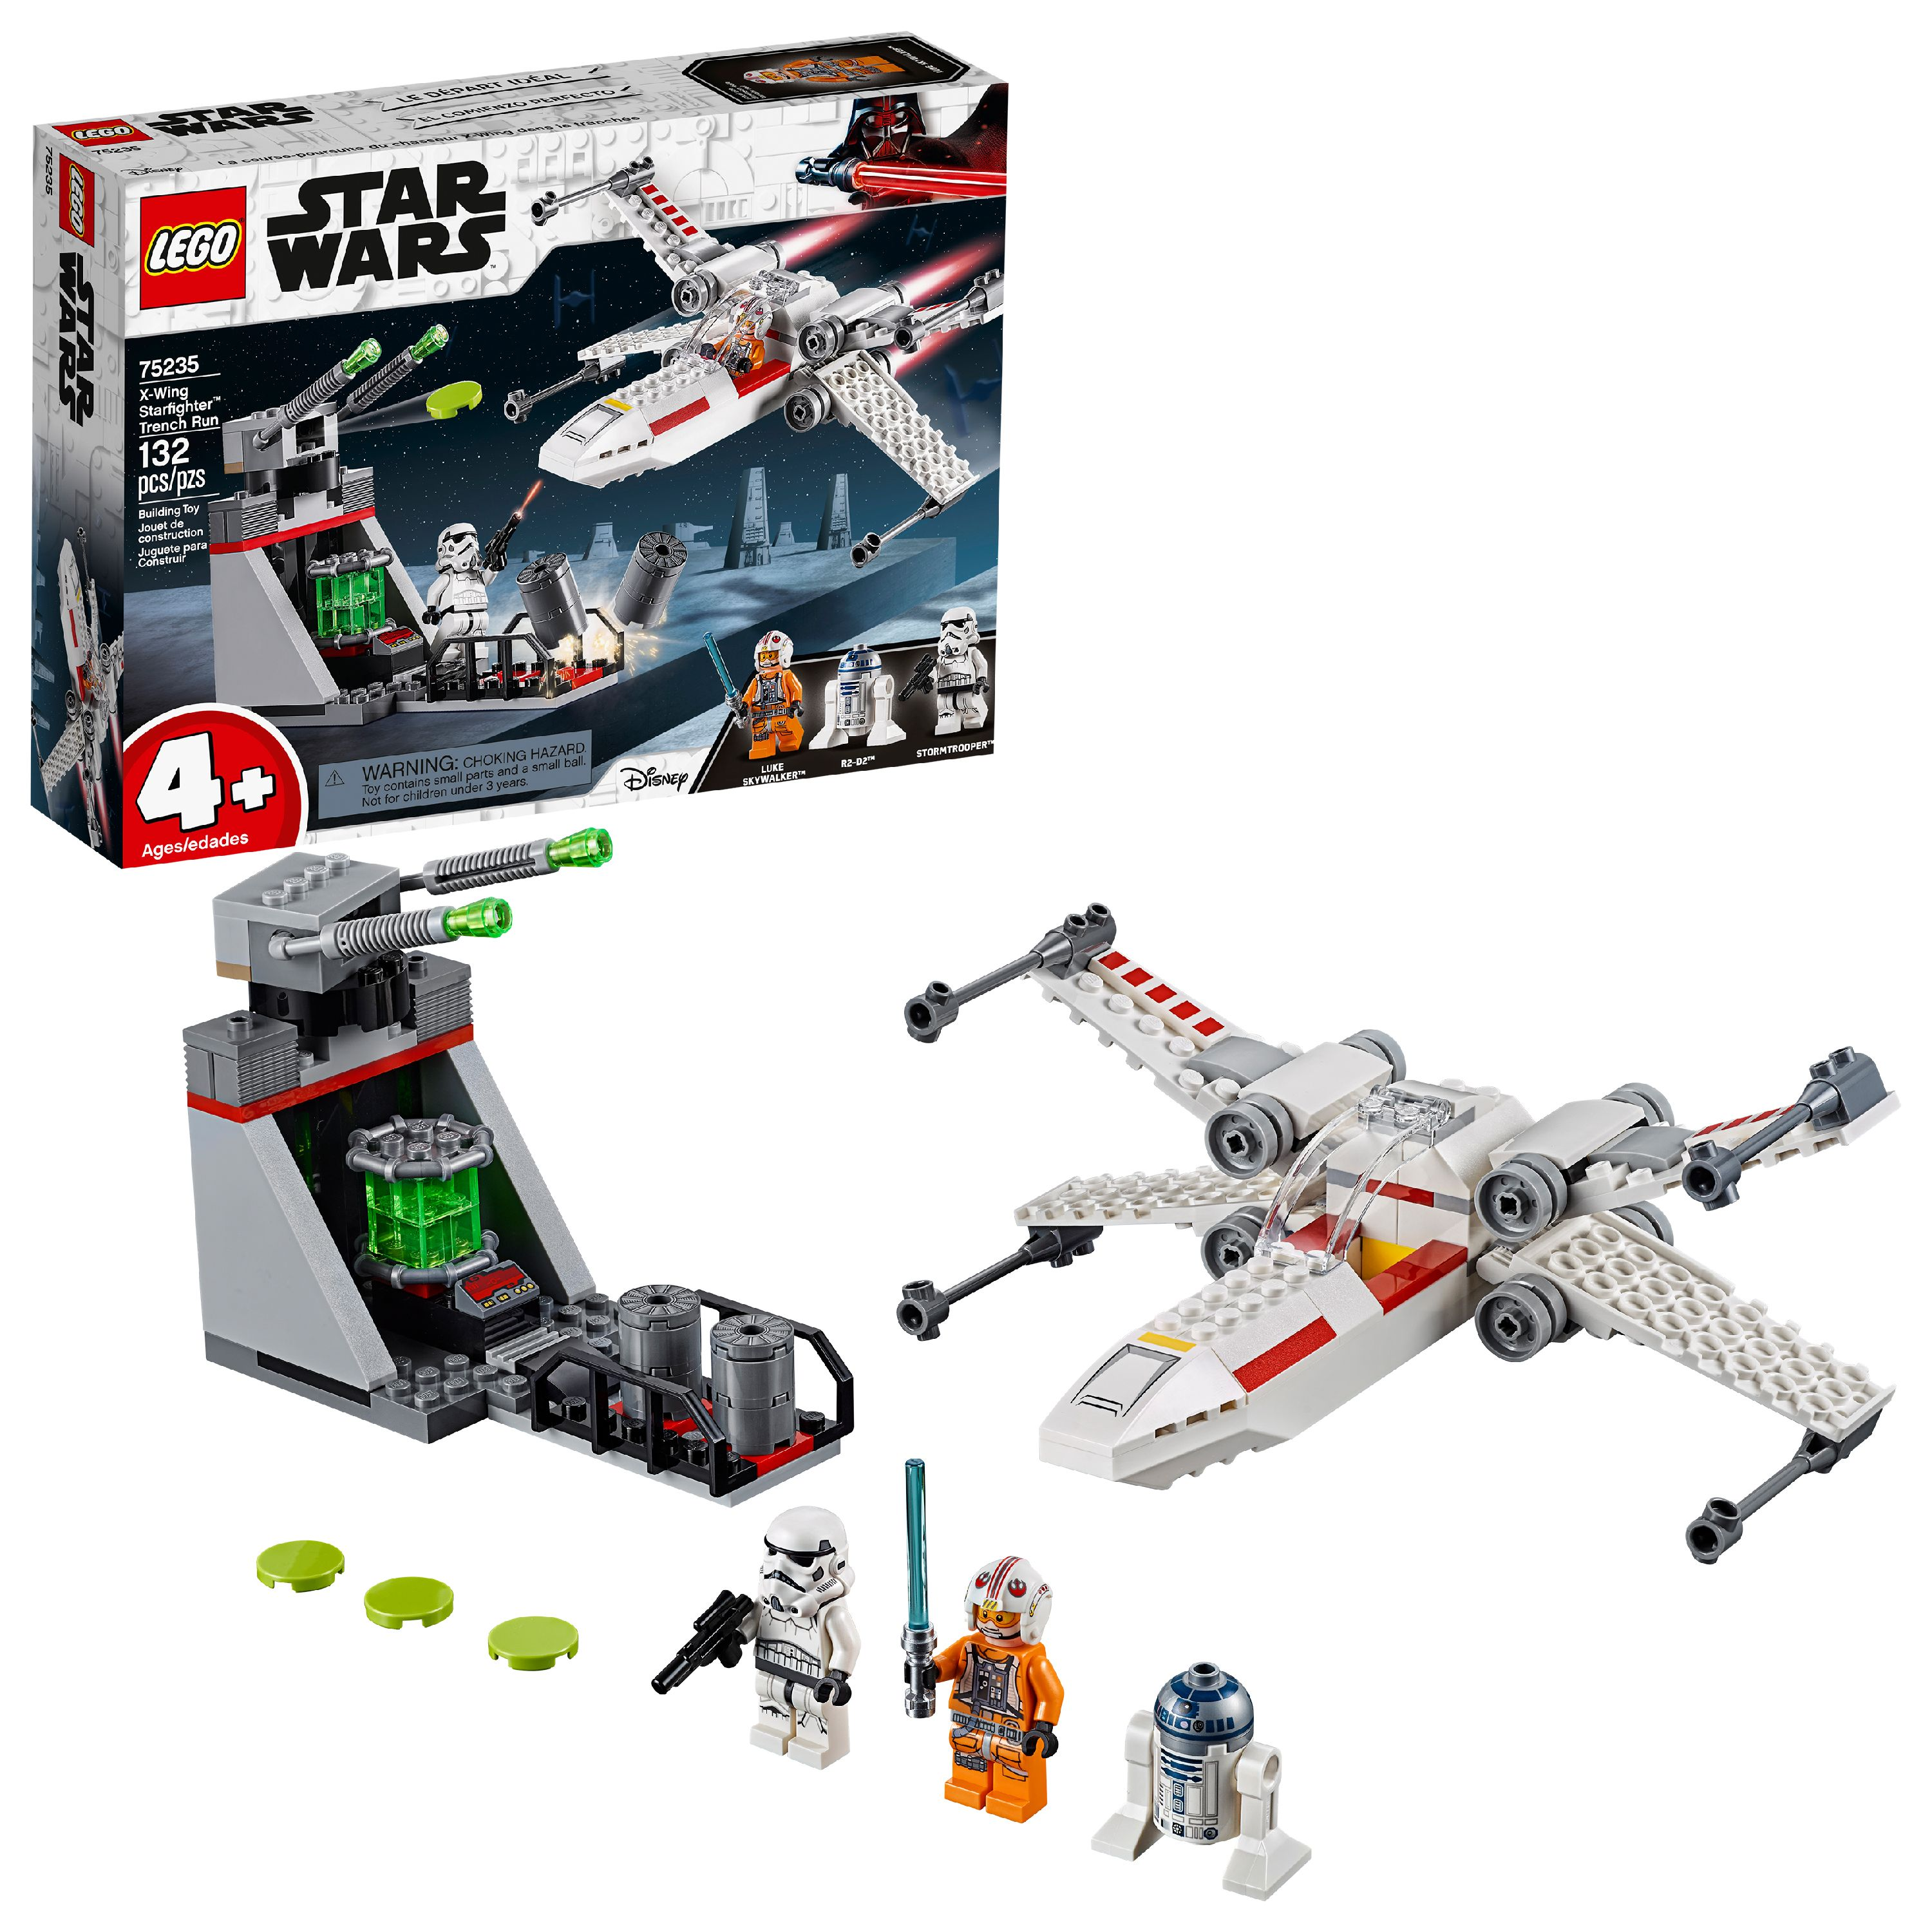 LEGO Star Wars TM X-Wing Starfighter Trench Run 75235